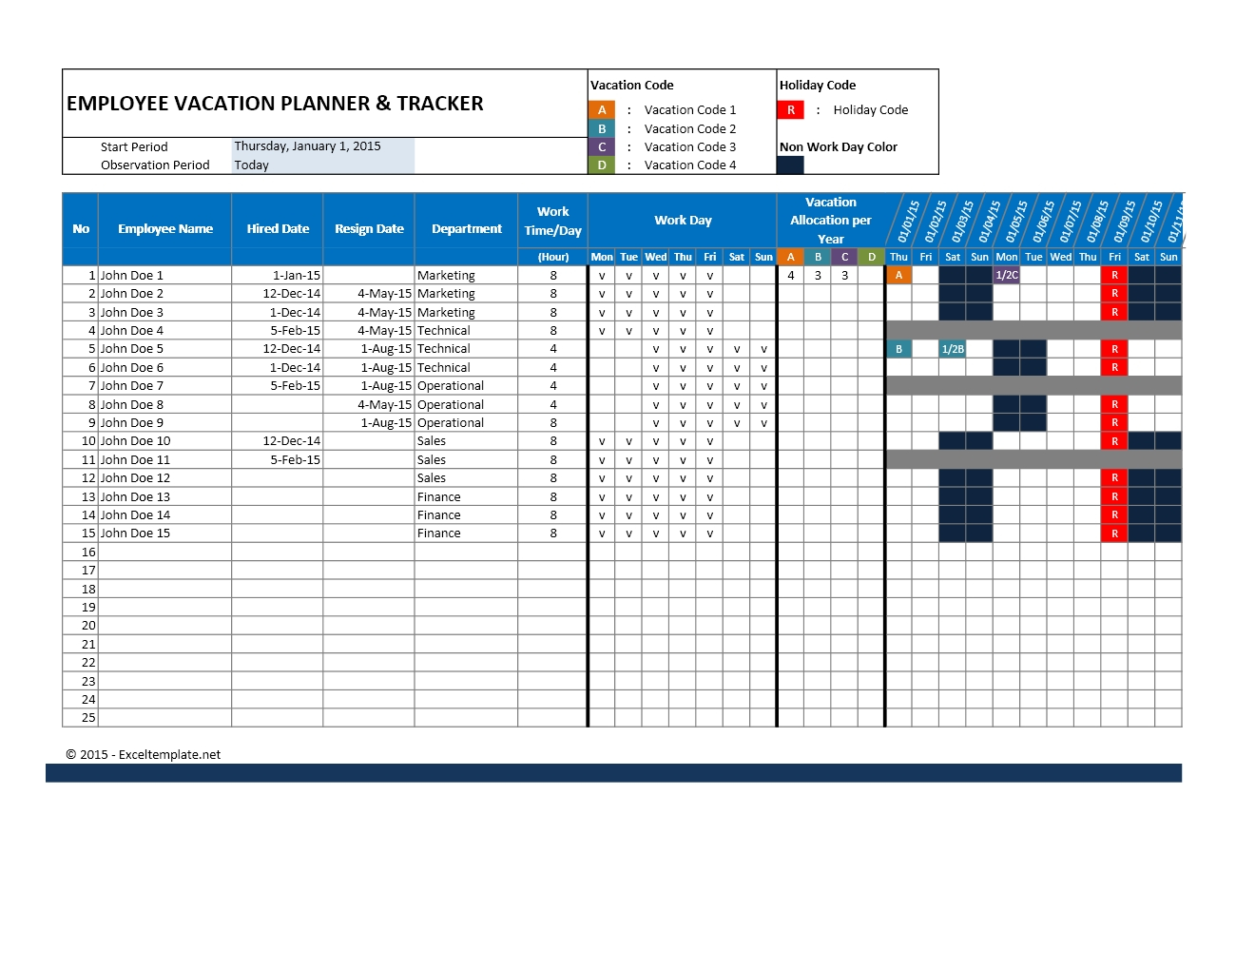 Employee Attendance Tracking Spreadsheet | Nbd Throughout Tracking Throughout Attendancetracking Spreadsheet Template